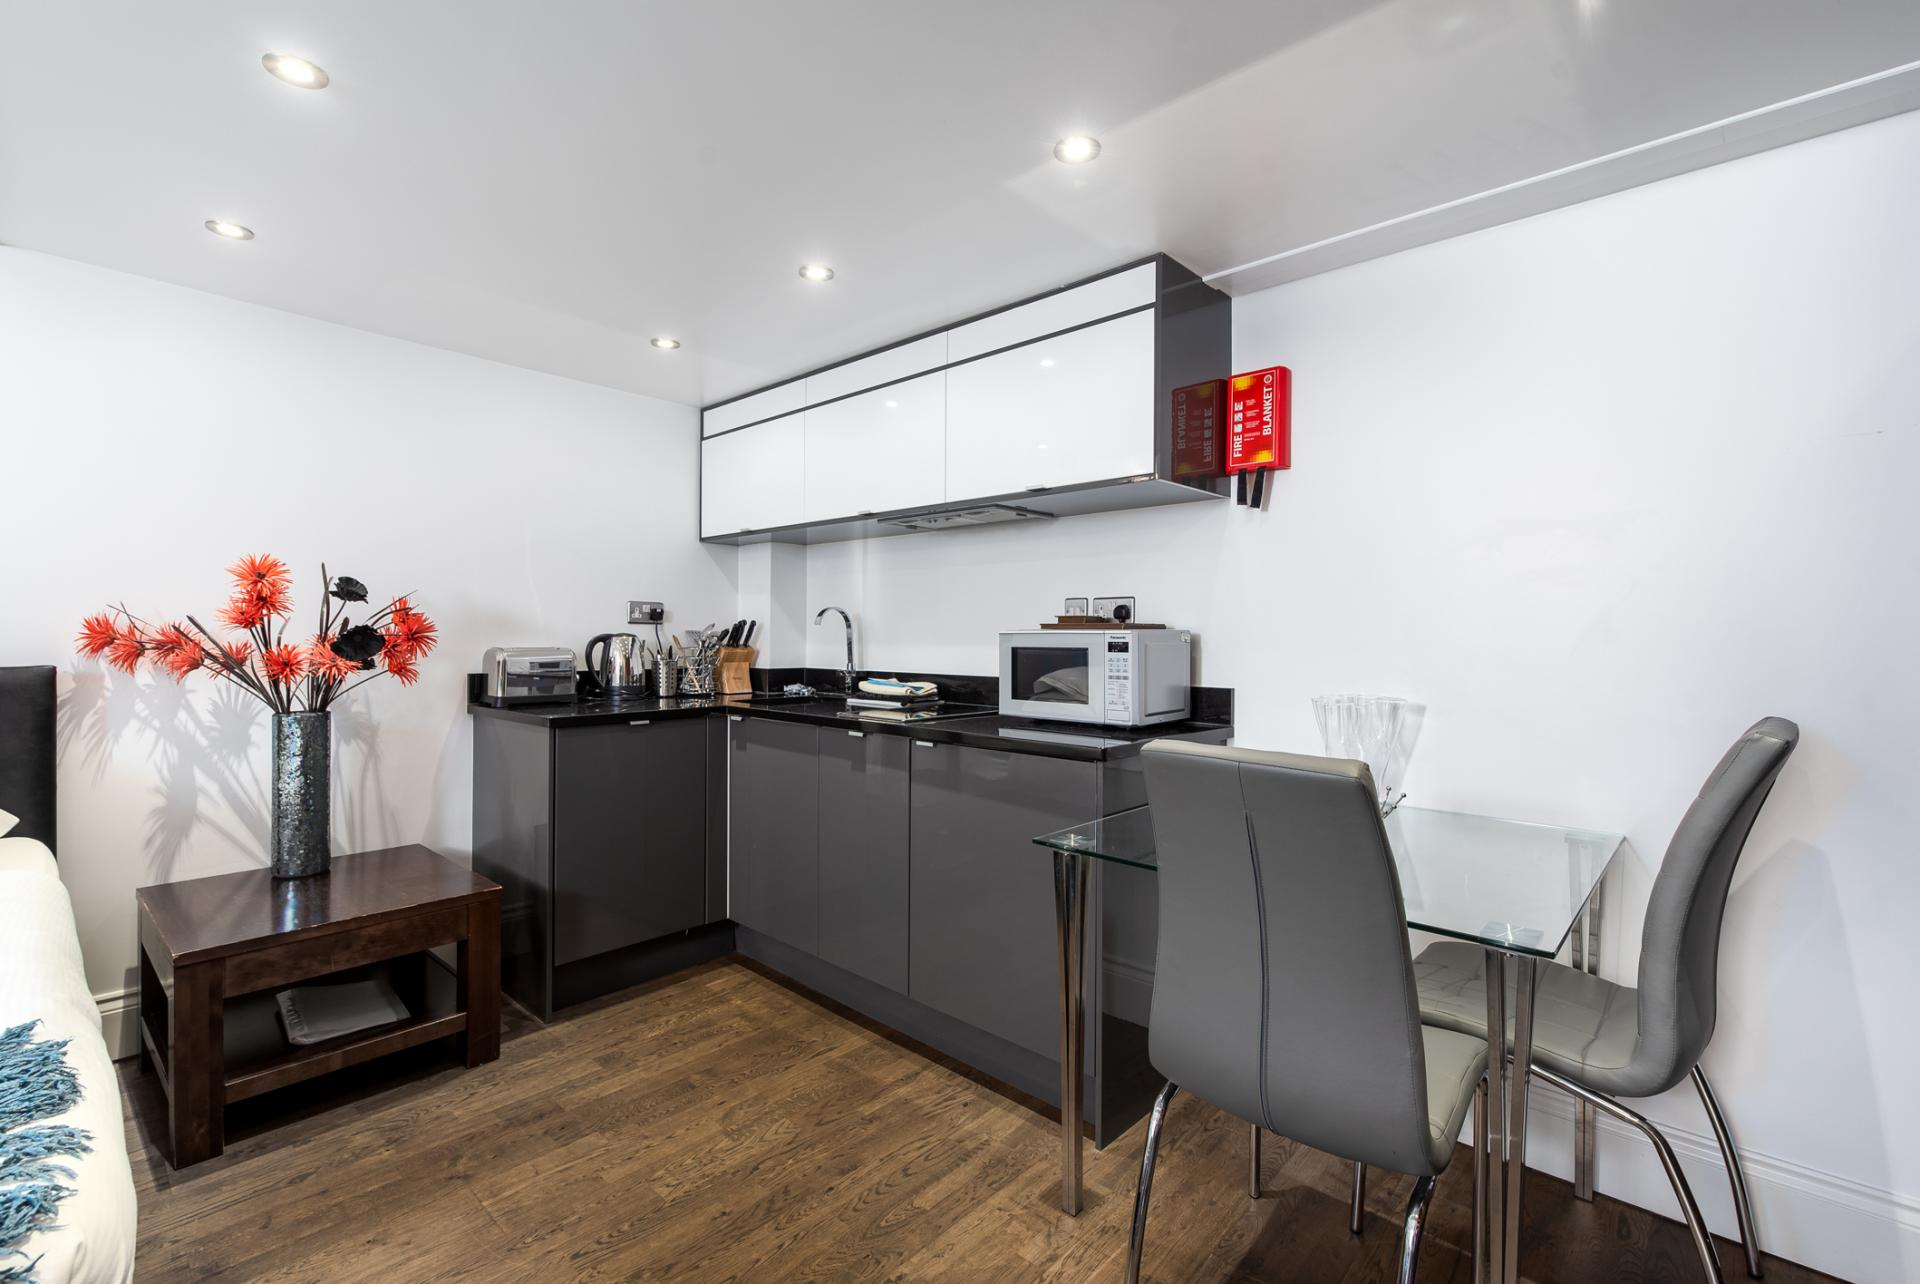 Kitchen diner at Chelsea Green Apartments, Chelsea, London